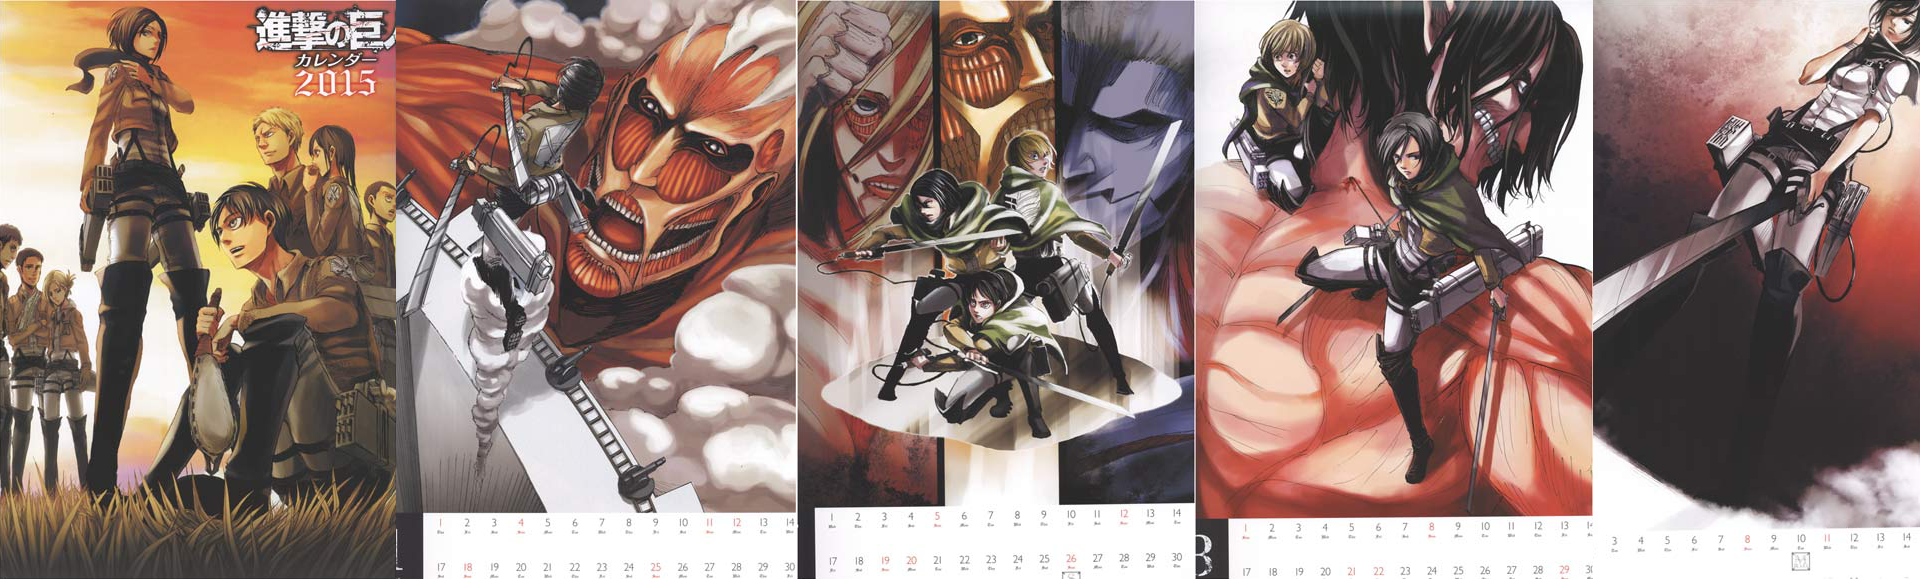 Most Wished for 2015 Anime Calendars haruhichan.com Attack on Titan calendar